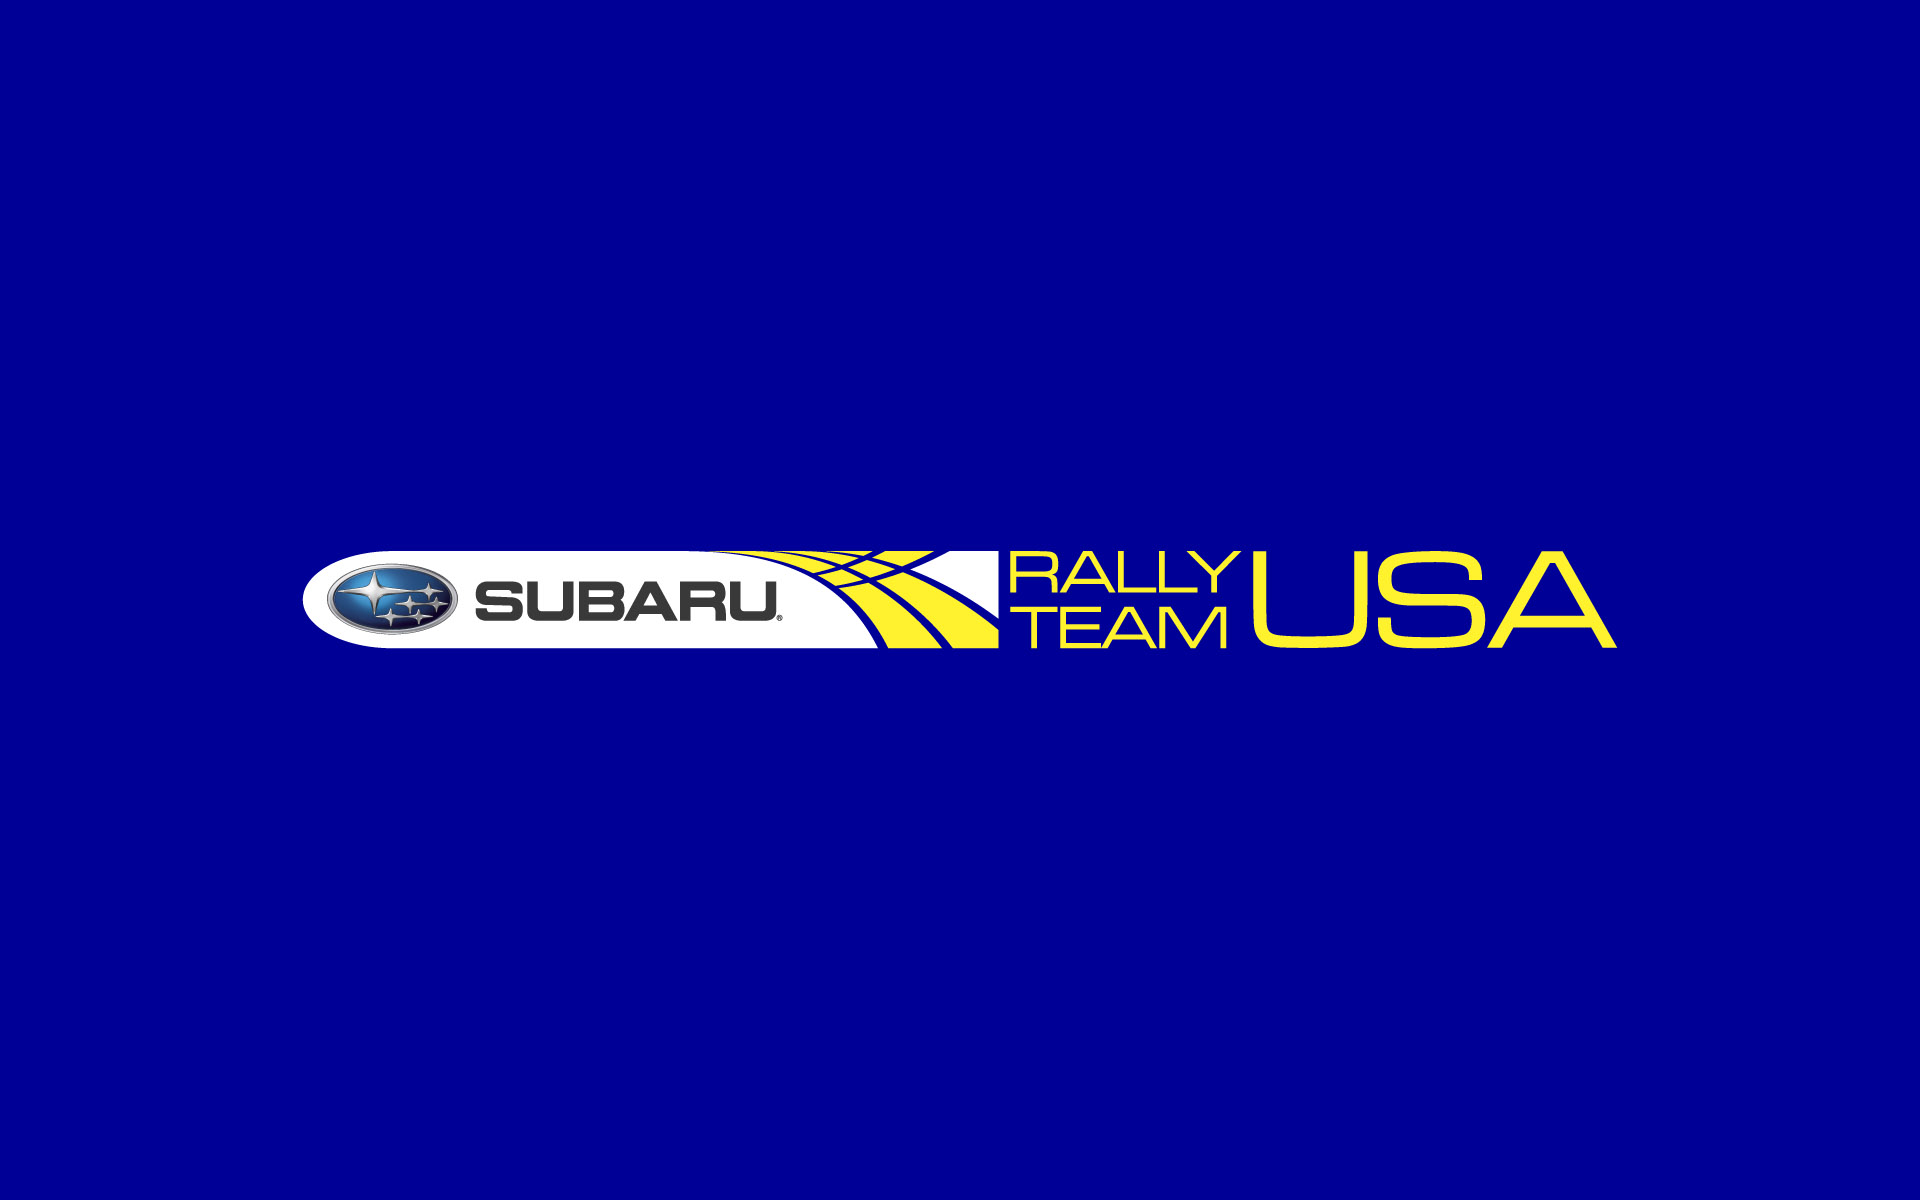 Subaru Rally Team USA Brand Identity